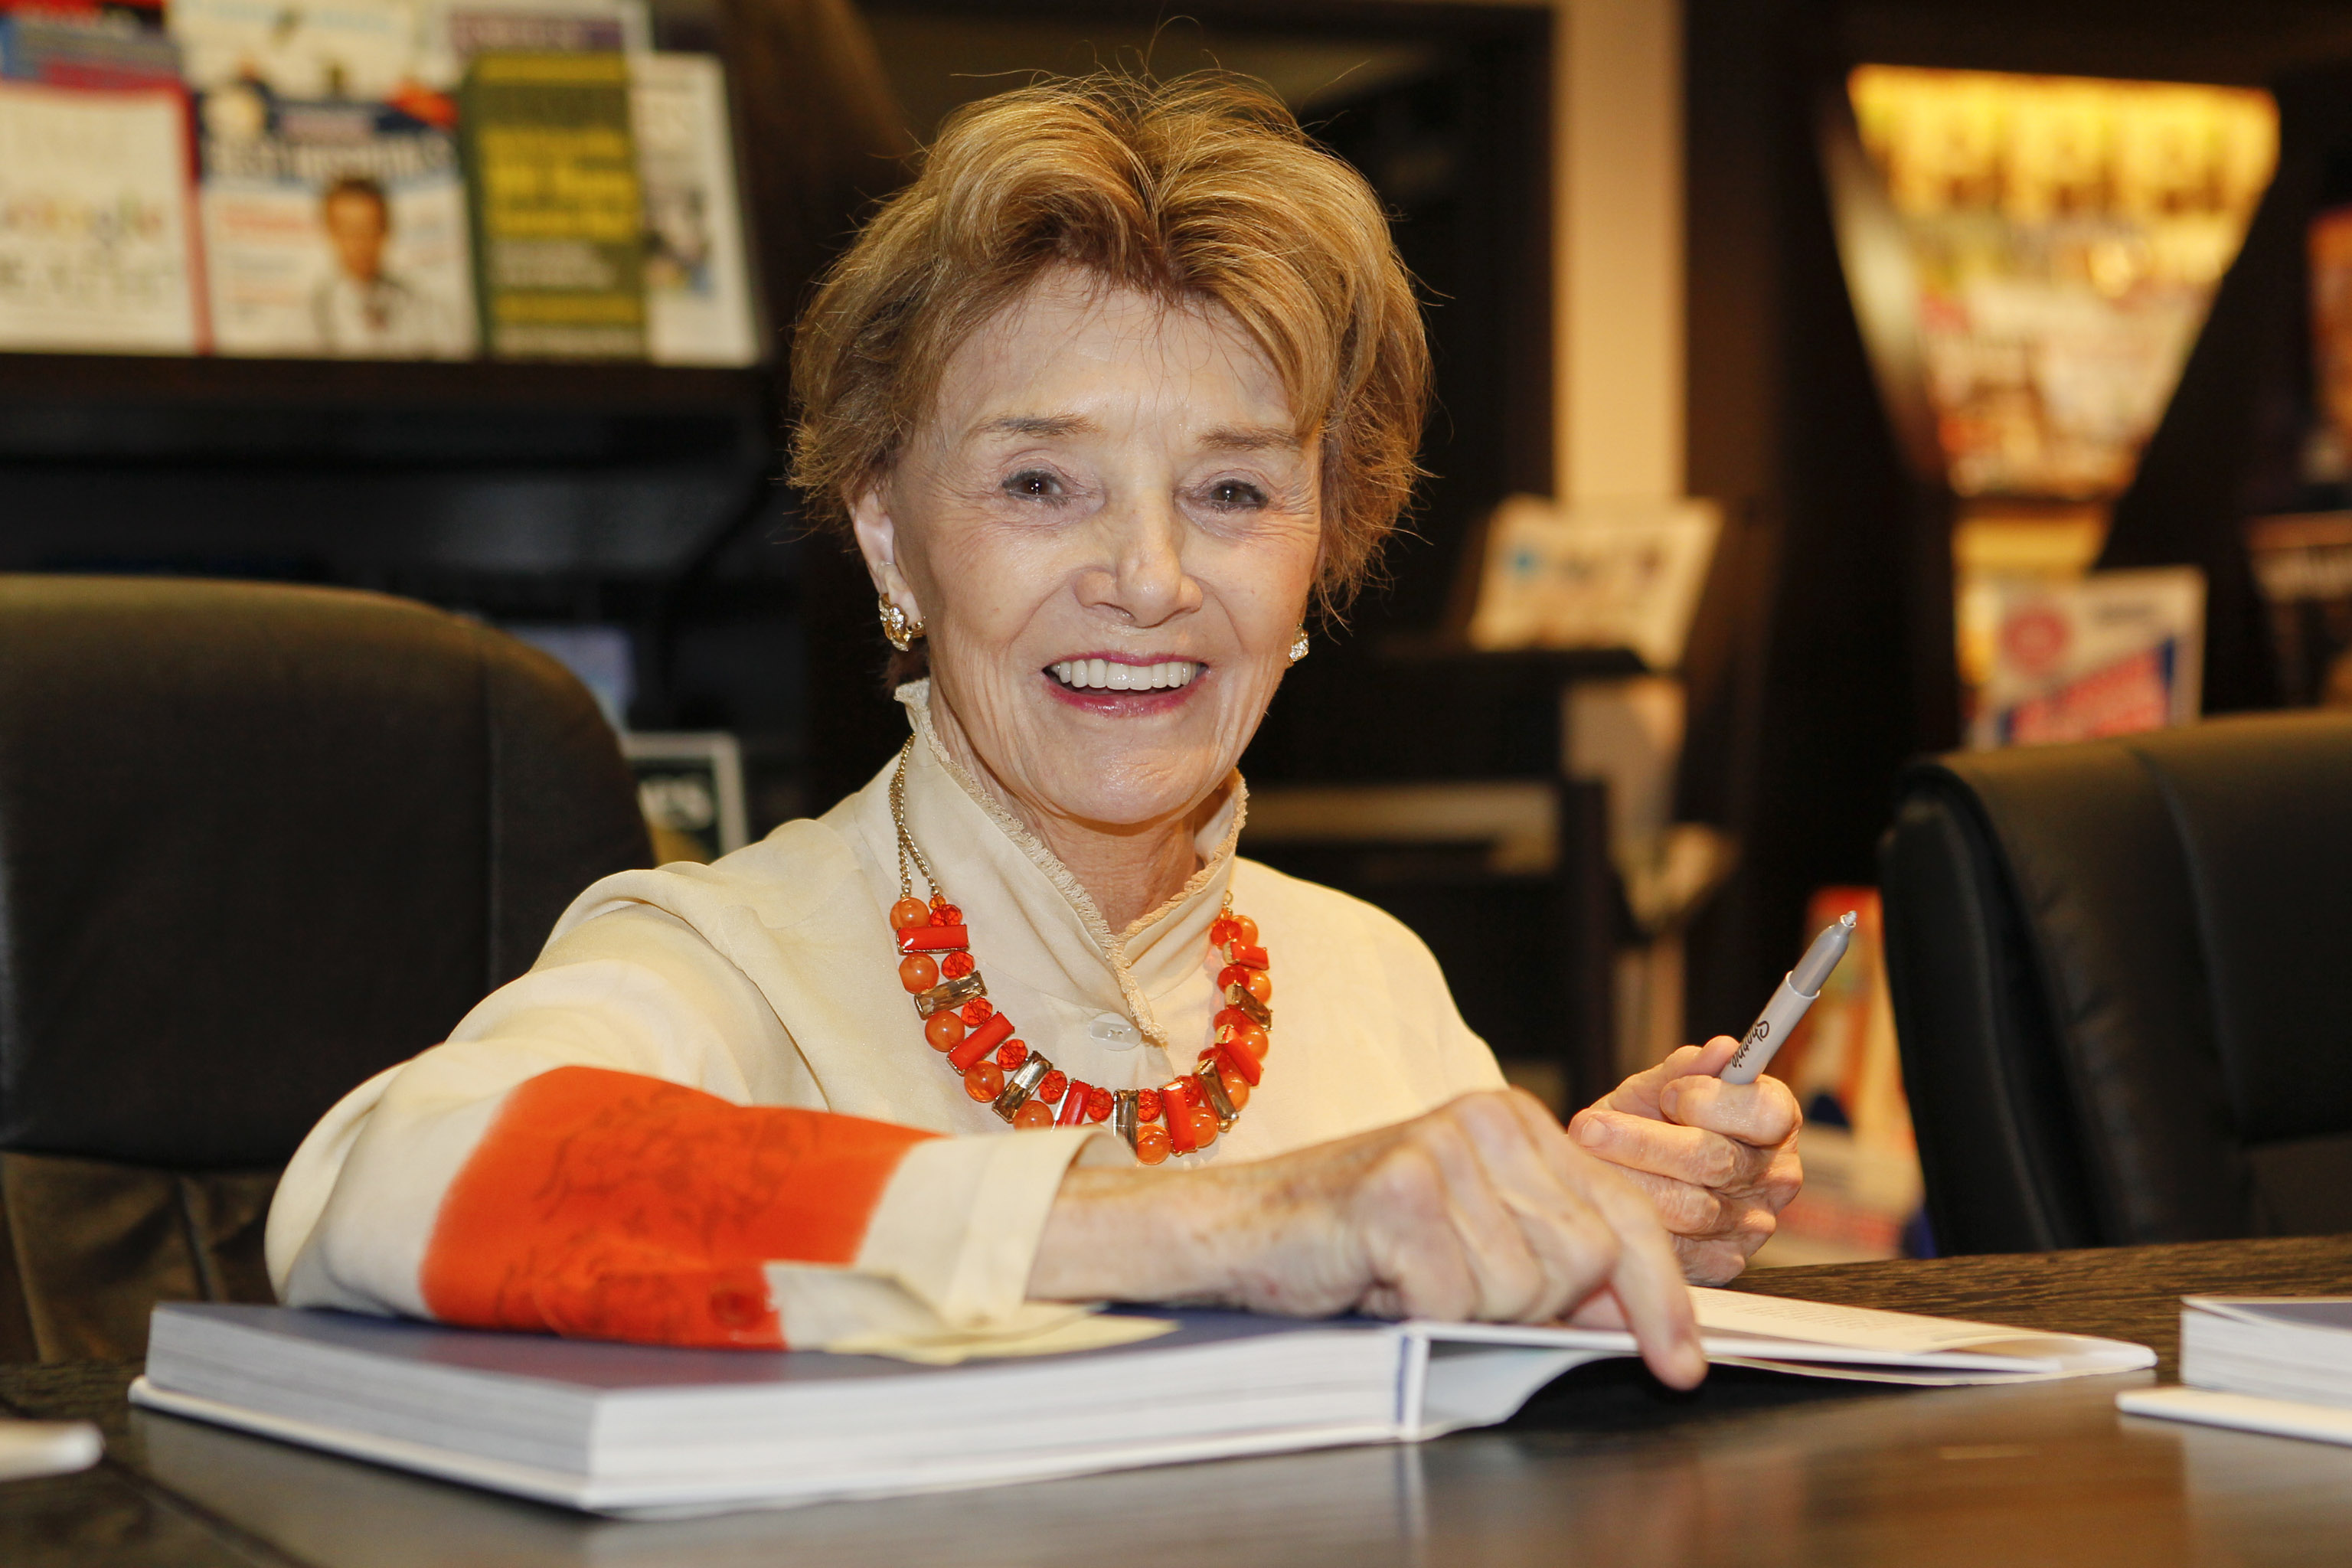 Actress Peggy McCay signs books and greets fans at the 'Days of our Lives: Better Living' book tour on September 27, 2013 in Birmingham, Alabama.